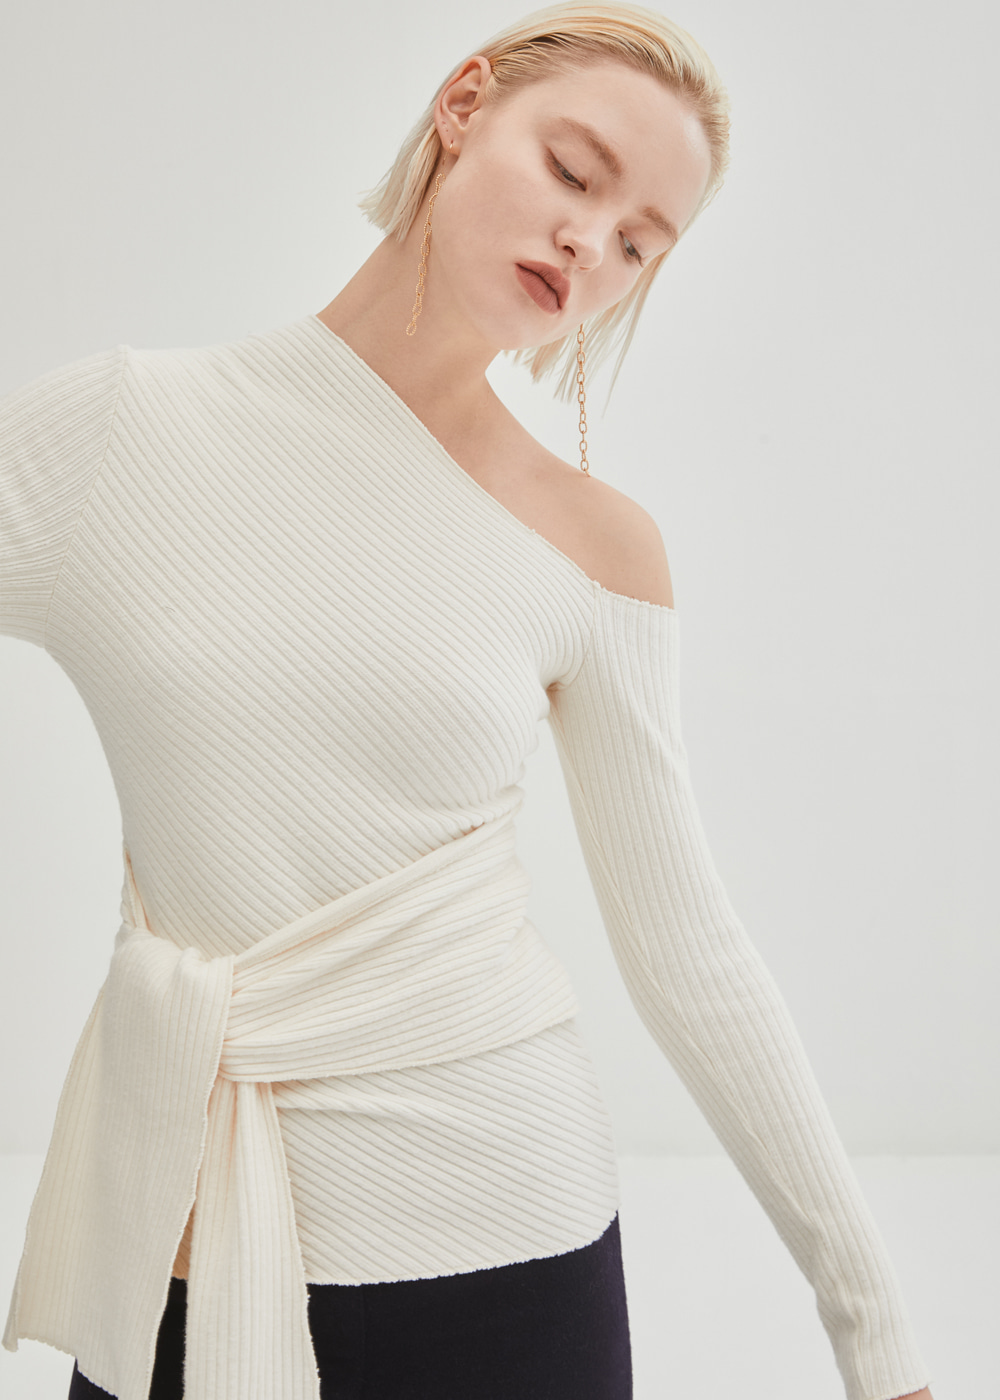 Tied Waist One Shoulder Top - Ivory